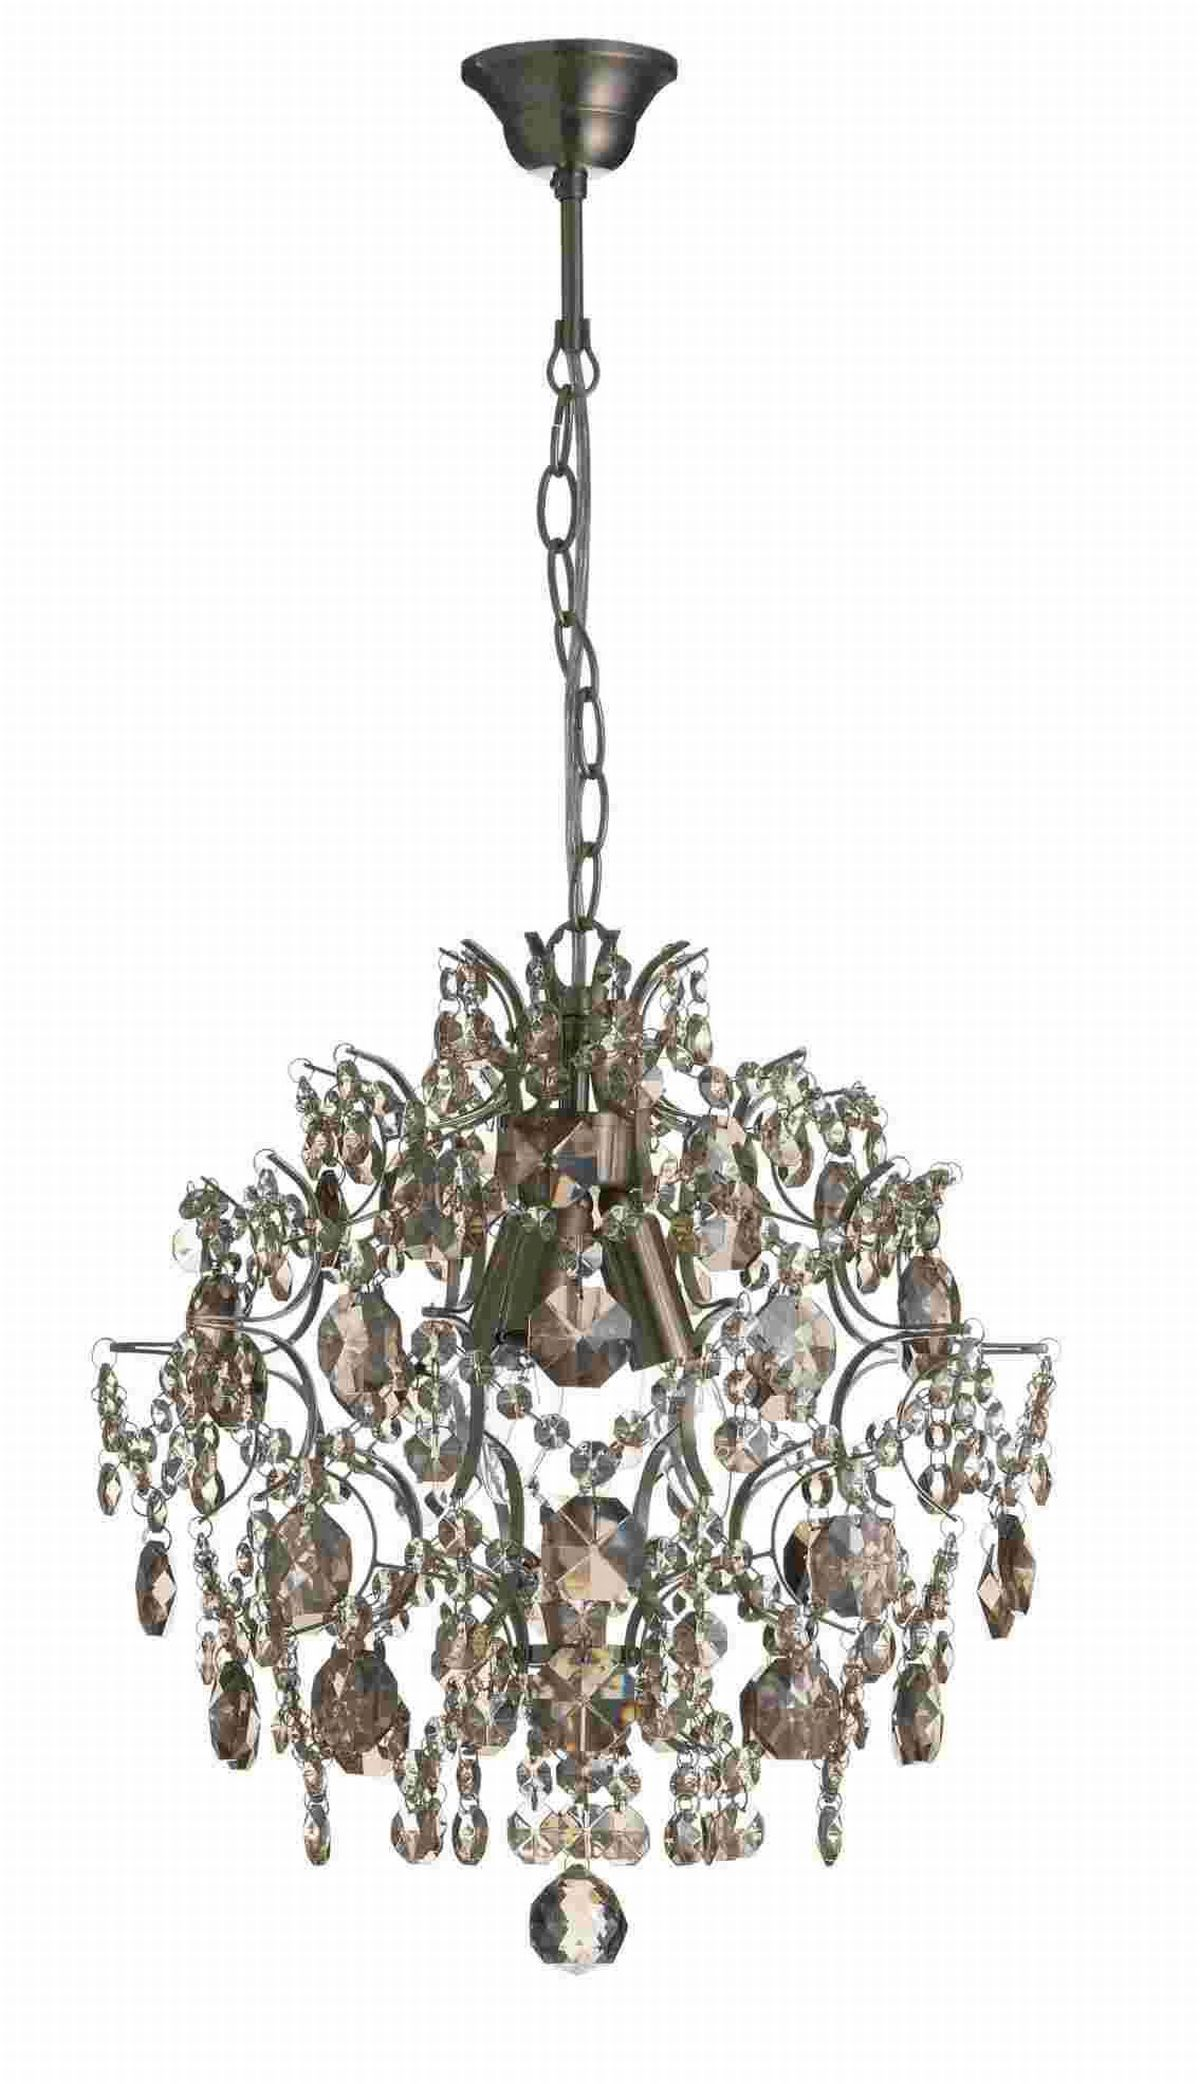 Chandeliers to suit your home chic and contemporary designs for chandeliers to suit your home chic and contemporary designs for every household dorset echo aloadofball Gallery